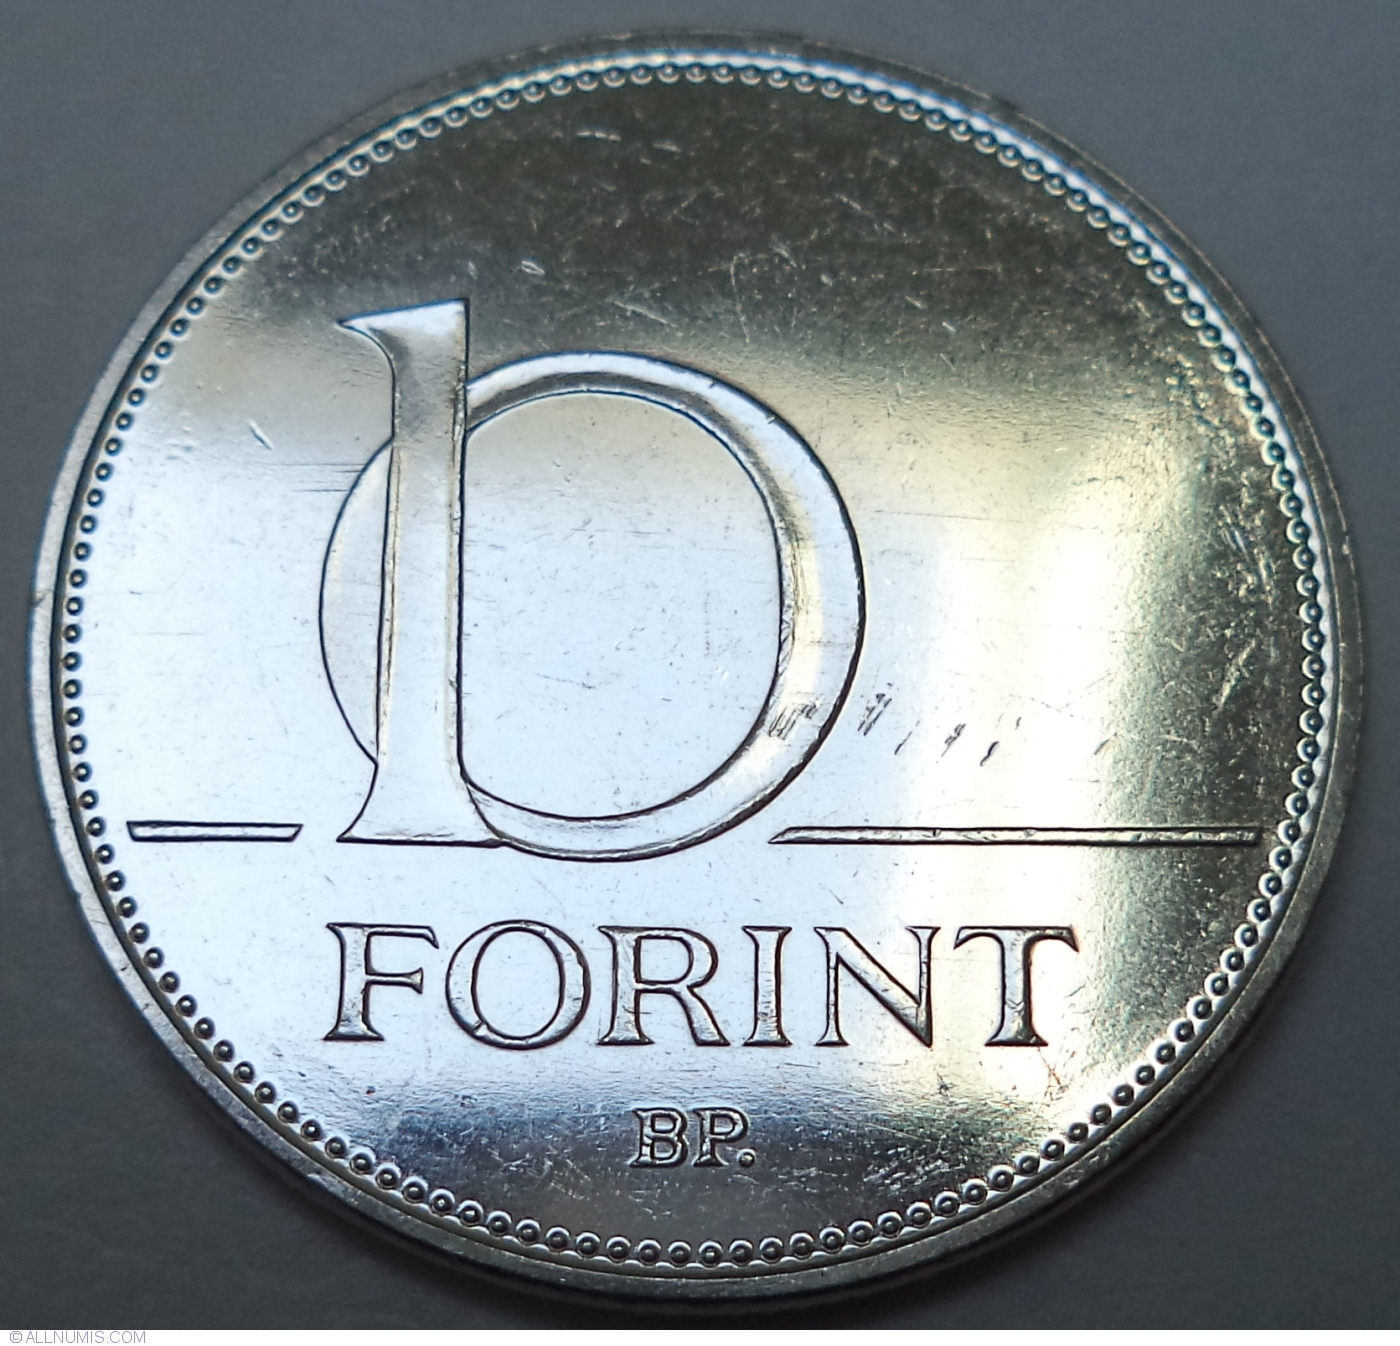 2018 UNC hungarian 50 forint lot set of 50 pcs coin from roll